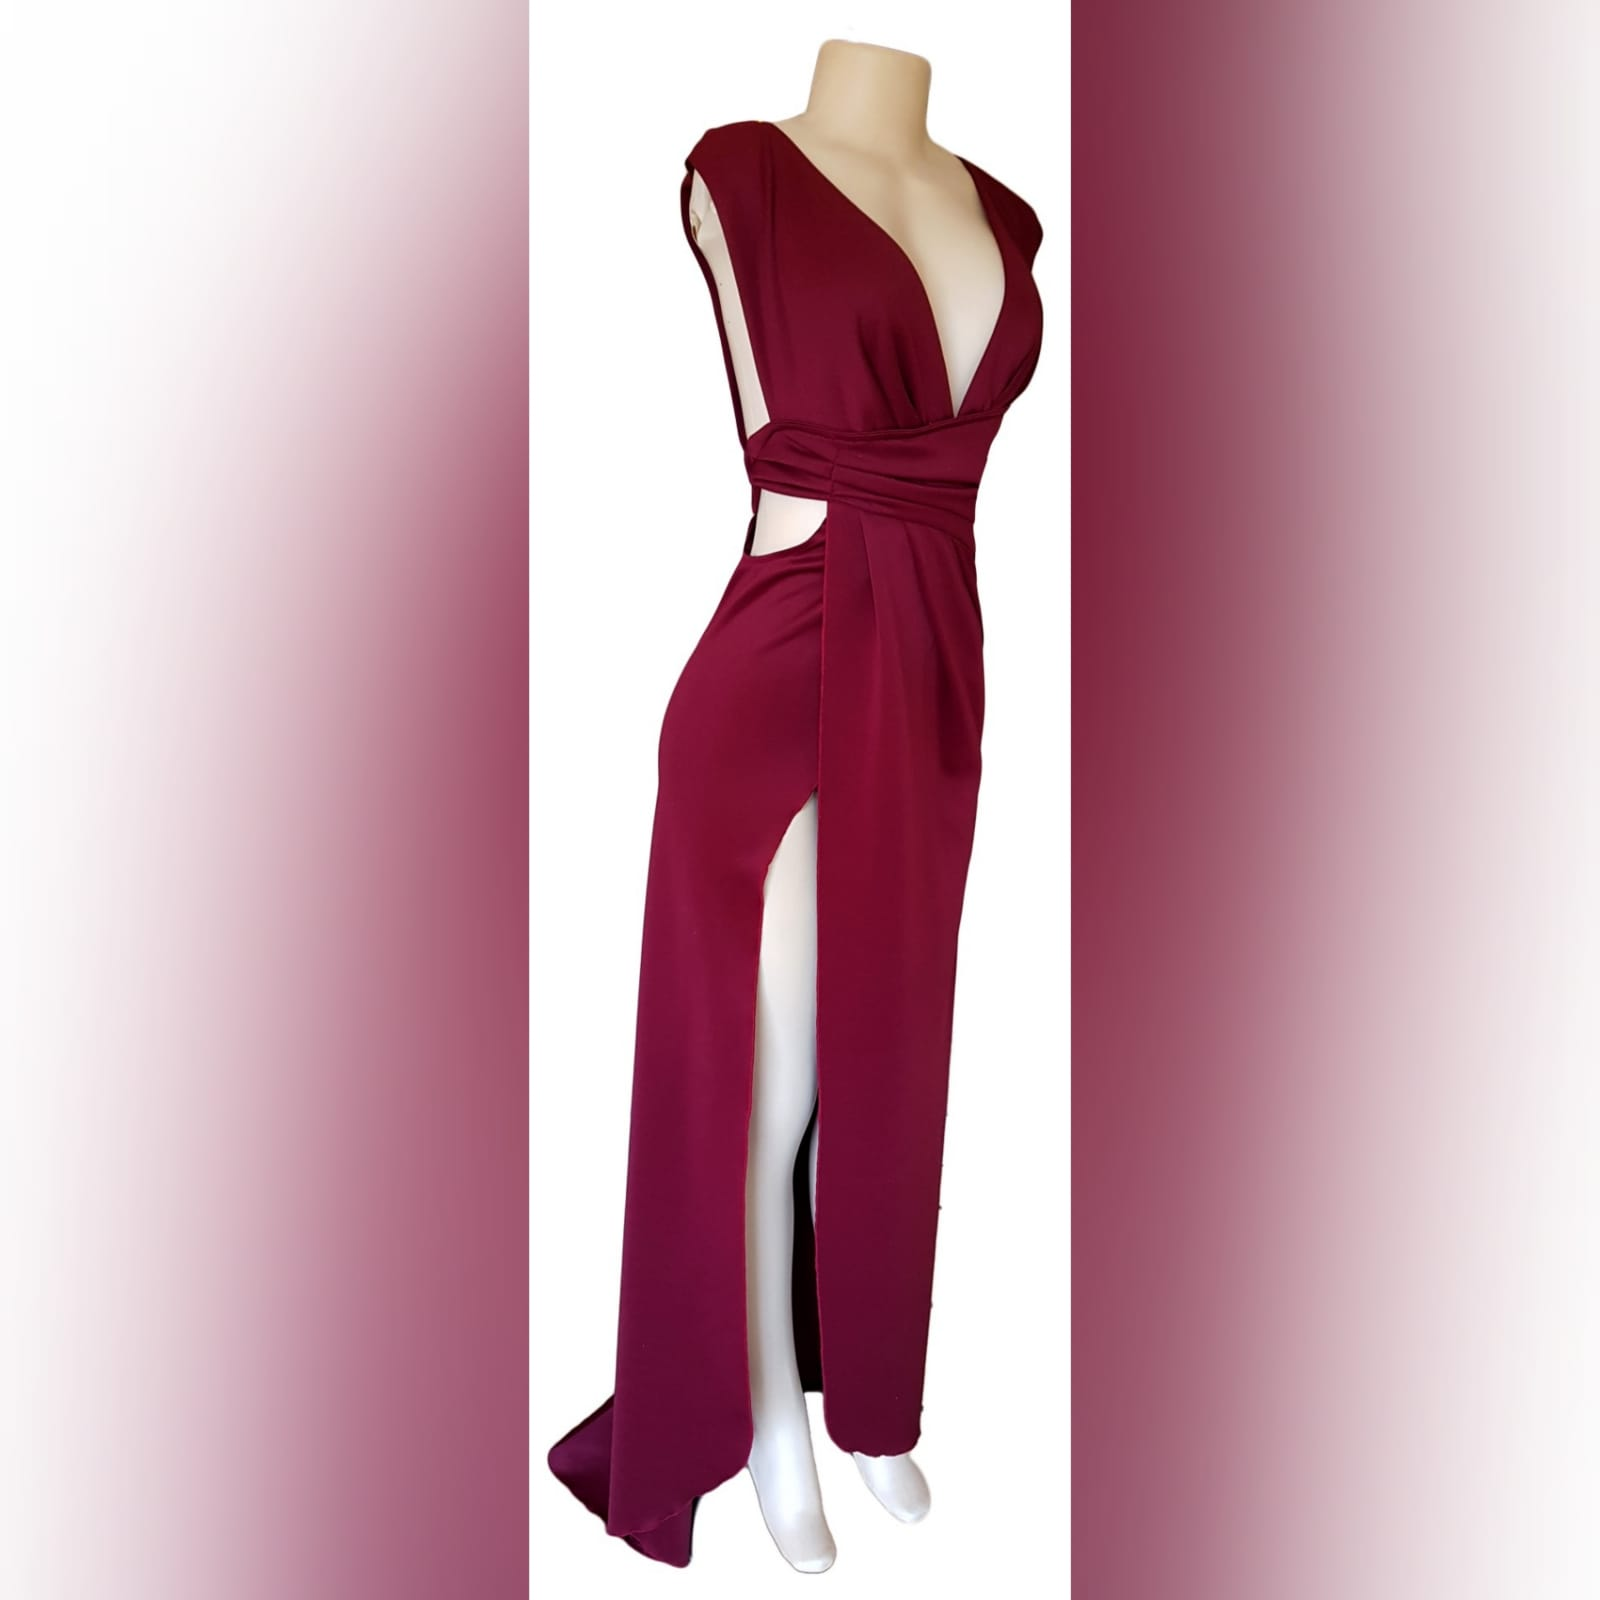 Burgundy draped long prom dress 5 burgundy draped long prom dress with a plunging neckline, sides open, crossed slit and a little train.